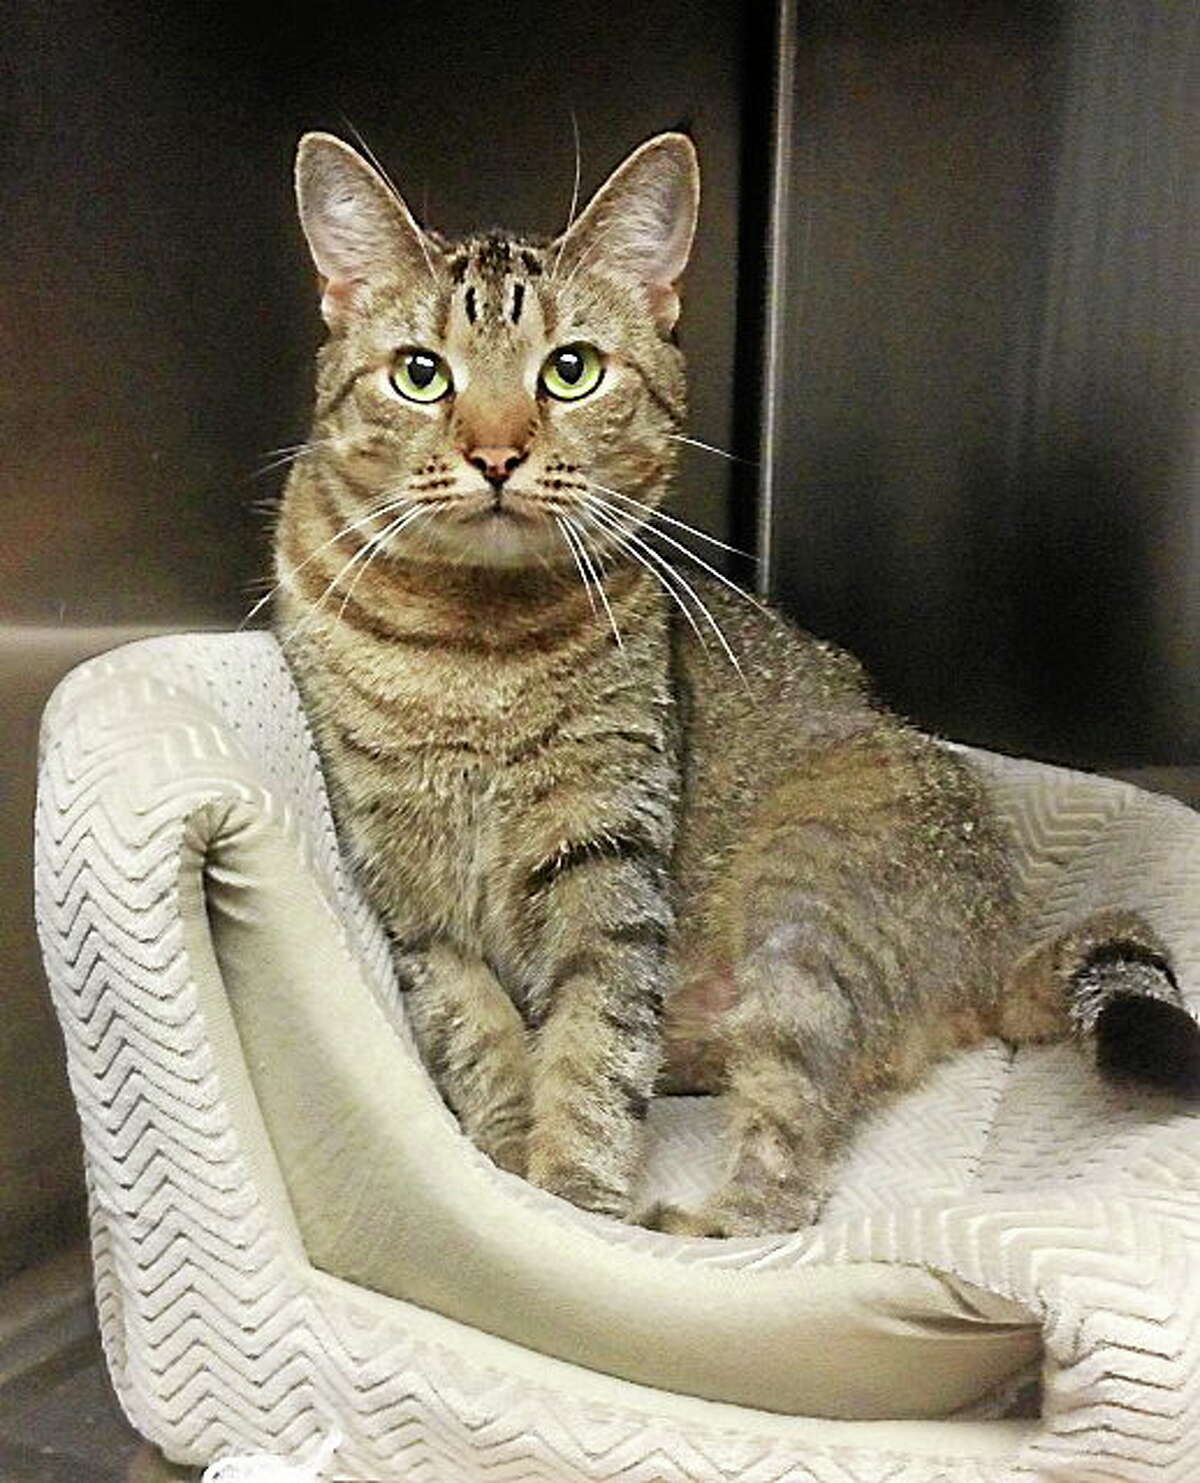 MARVELOUS MADDIE Maddie, a 2-year-old brown /gray tabby mix female spayed cat, is a bit petite, short haired, with pretty green eyes. She's playful, affectionate, loving, healthy, likes everyone, loves attention and is a real sweetheart. She would be fine with another cat that is good with cats also. She has so much love to give back. Maddie is in need of a reliable foster home until placed, everything provided. Learn more on our Foster Care Program or adoption from Pet Protectors by calling 203-330-0255, visit www.petprotectorsrescue.org or email contactus@petprotectorsrescue.org.